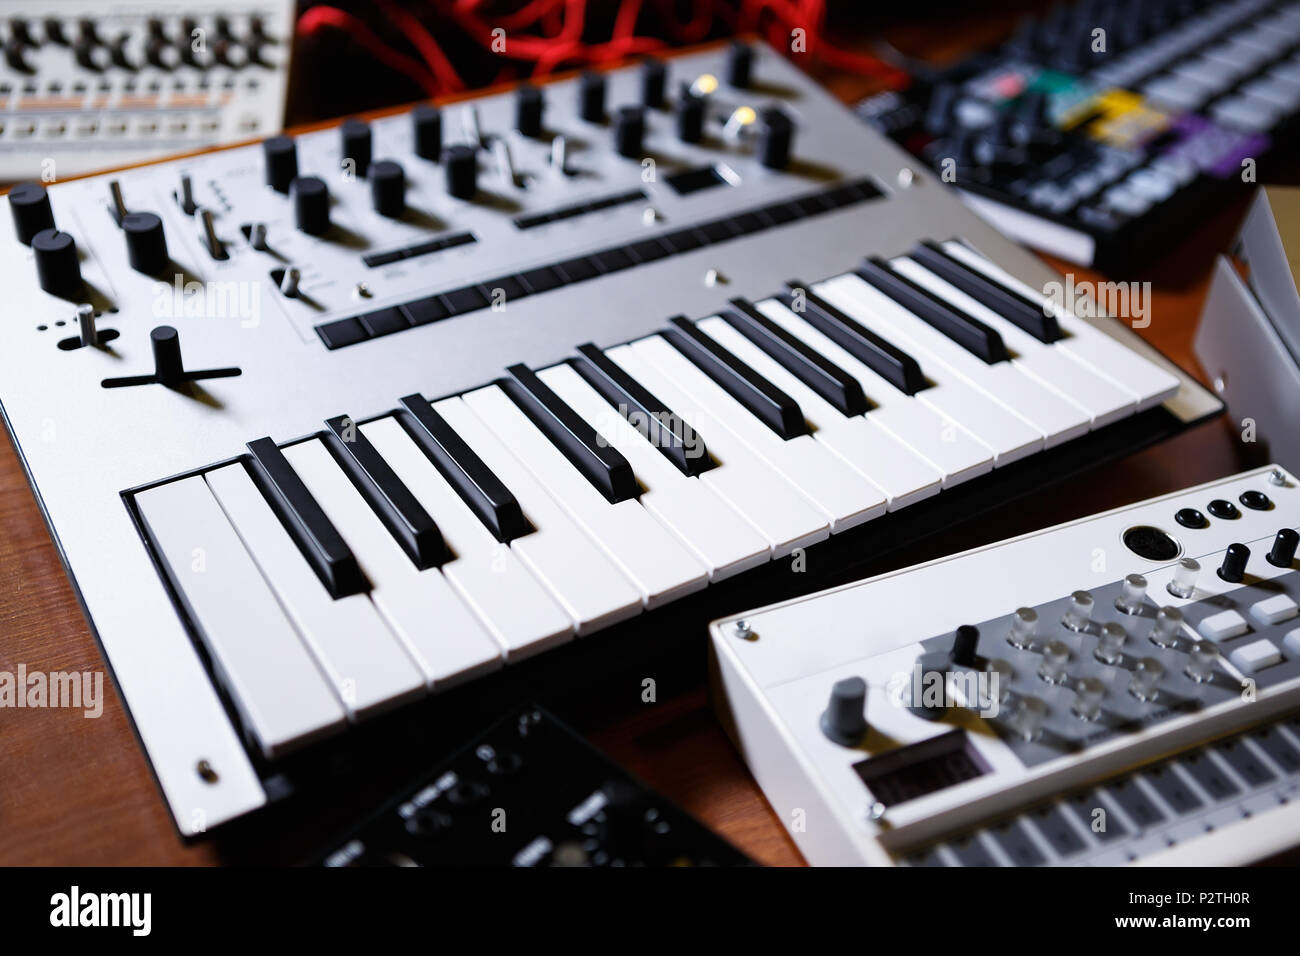 Buy synthesizer in dj shop.Professional electronic midi keyboard with black and white piano keys in music store.Audio equipment for musical production - Stock Image